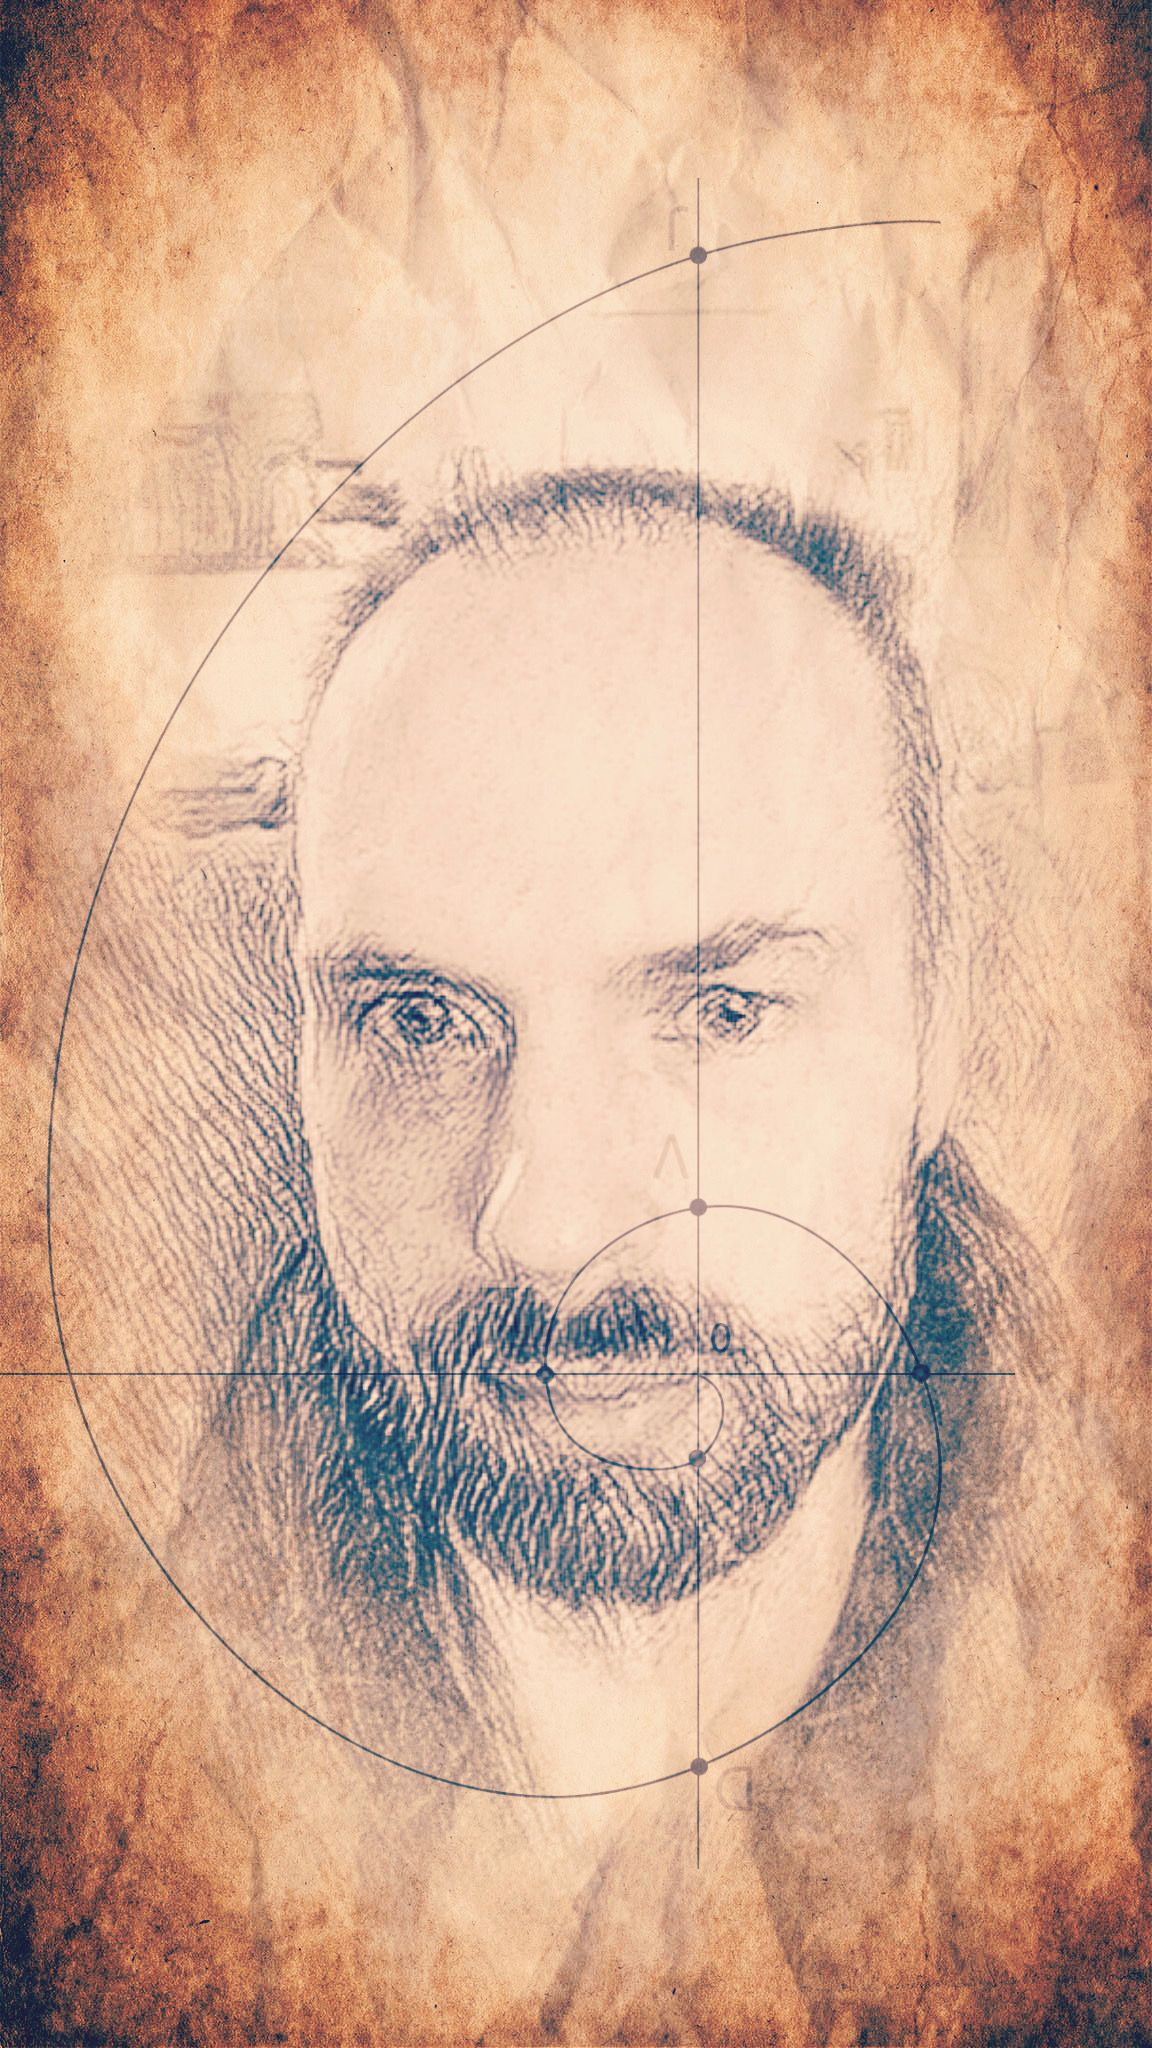 Another selfie of me, this filter also looks like pencil but in an ancient parchment kind of way.